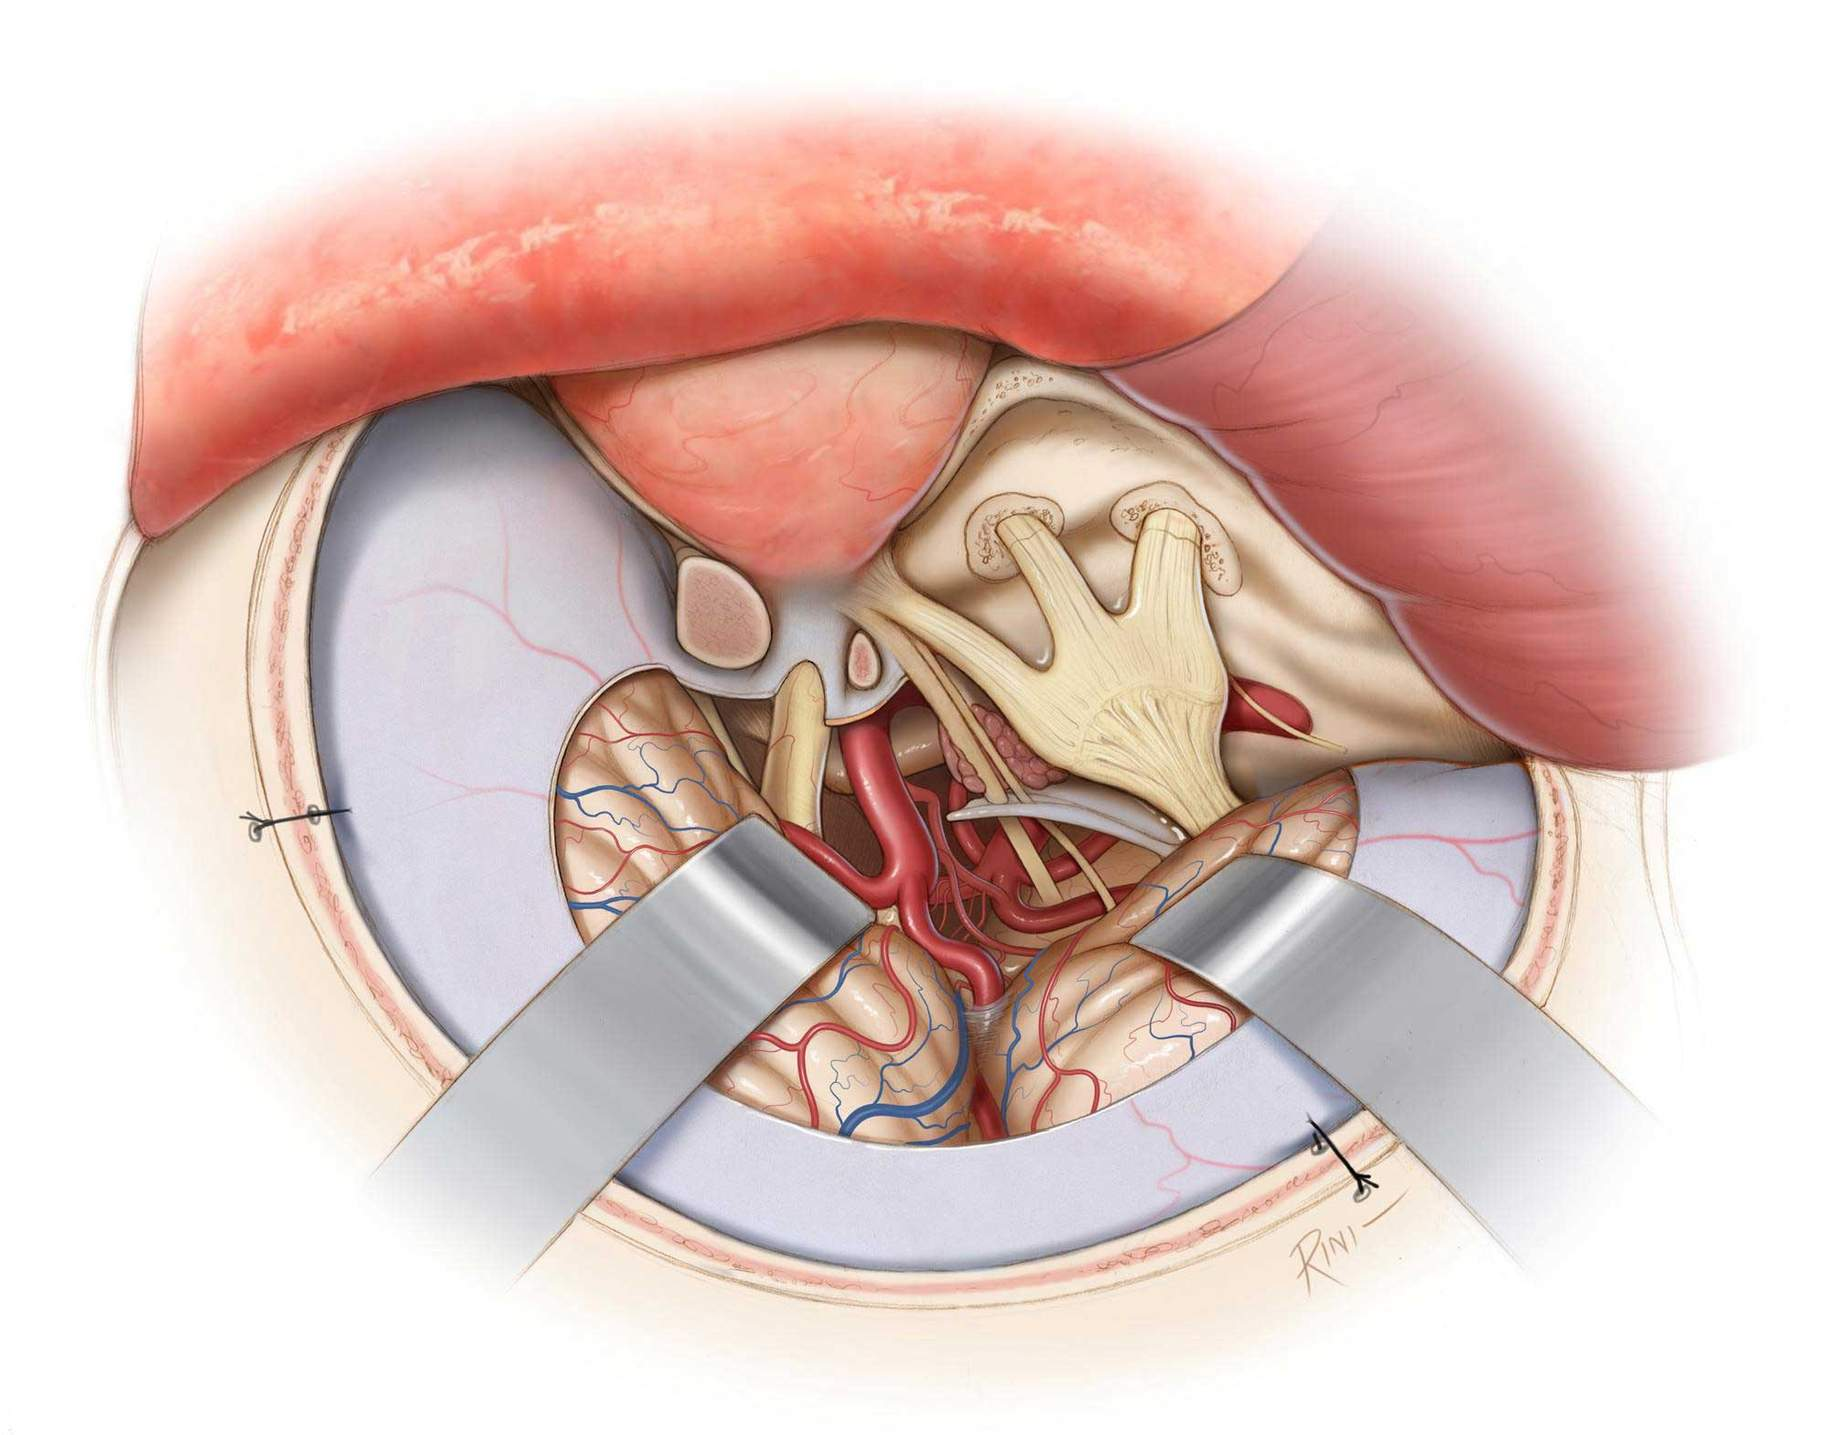 Figure 12: A final view of the operative field after tumor resection is illustrated. Small amount of tumor is left around CN IV to avoid permanent morbidity.